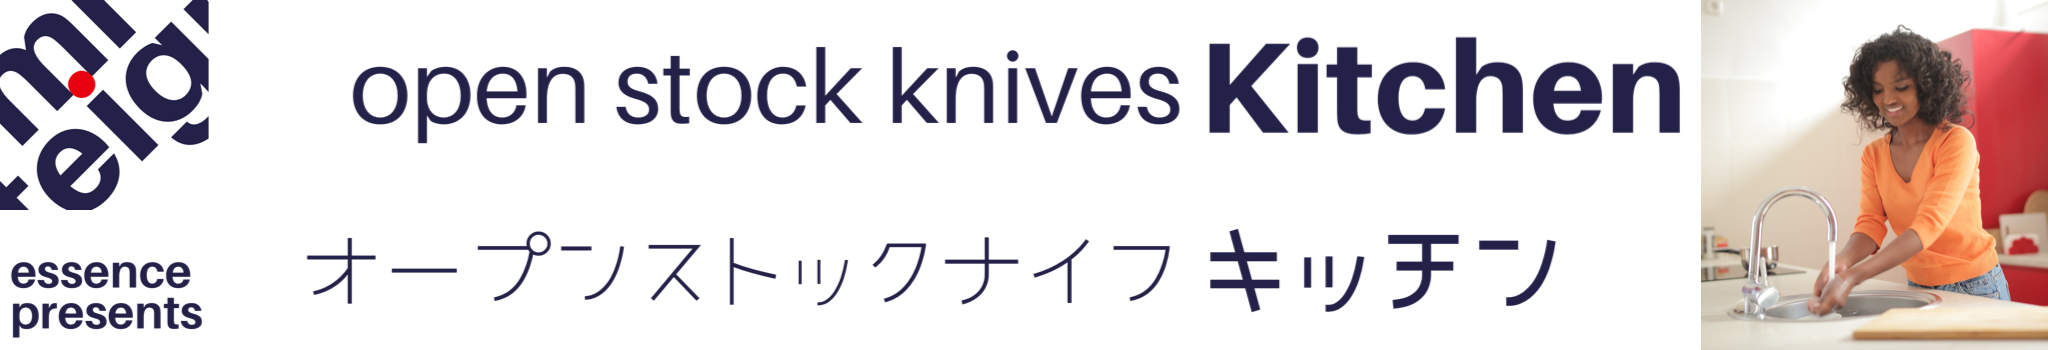 miteigi | Kitchen Open Stock Knives Collection | Japanese Apparel and Home Decor Retail Shopping